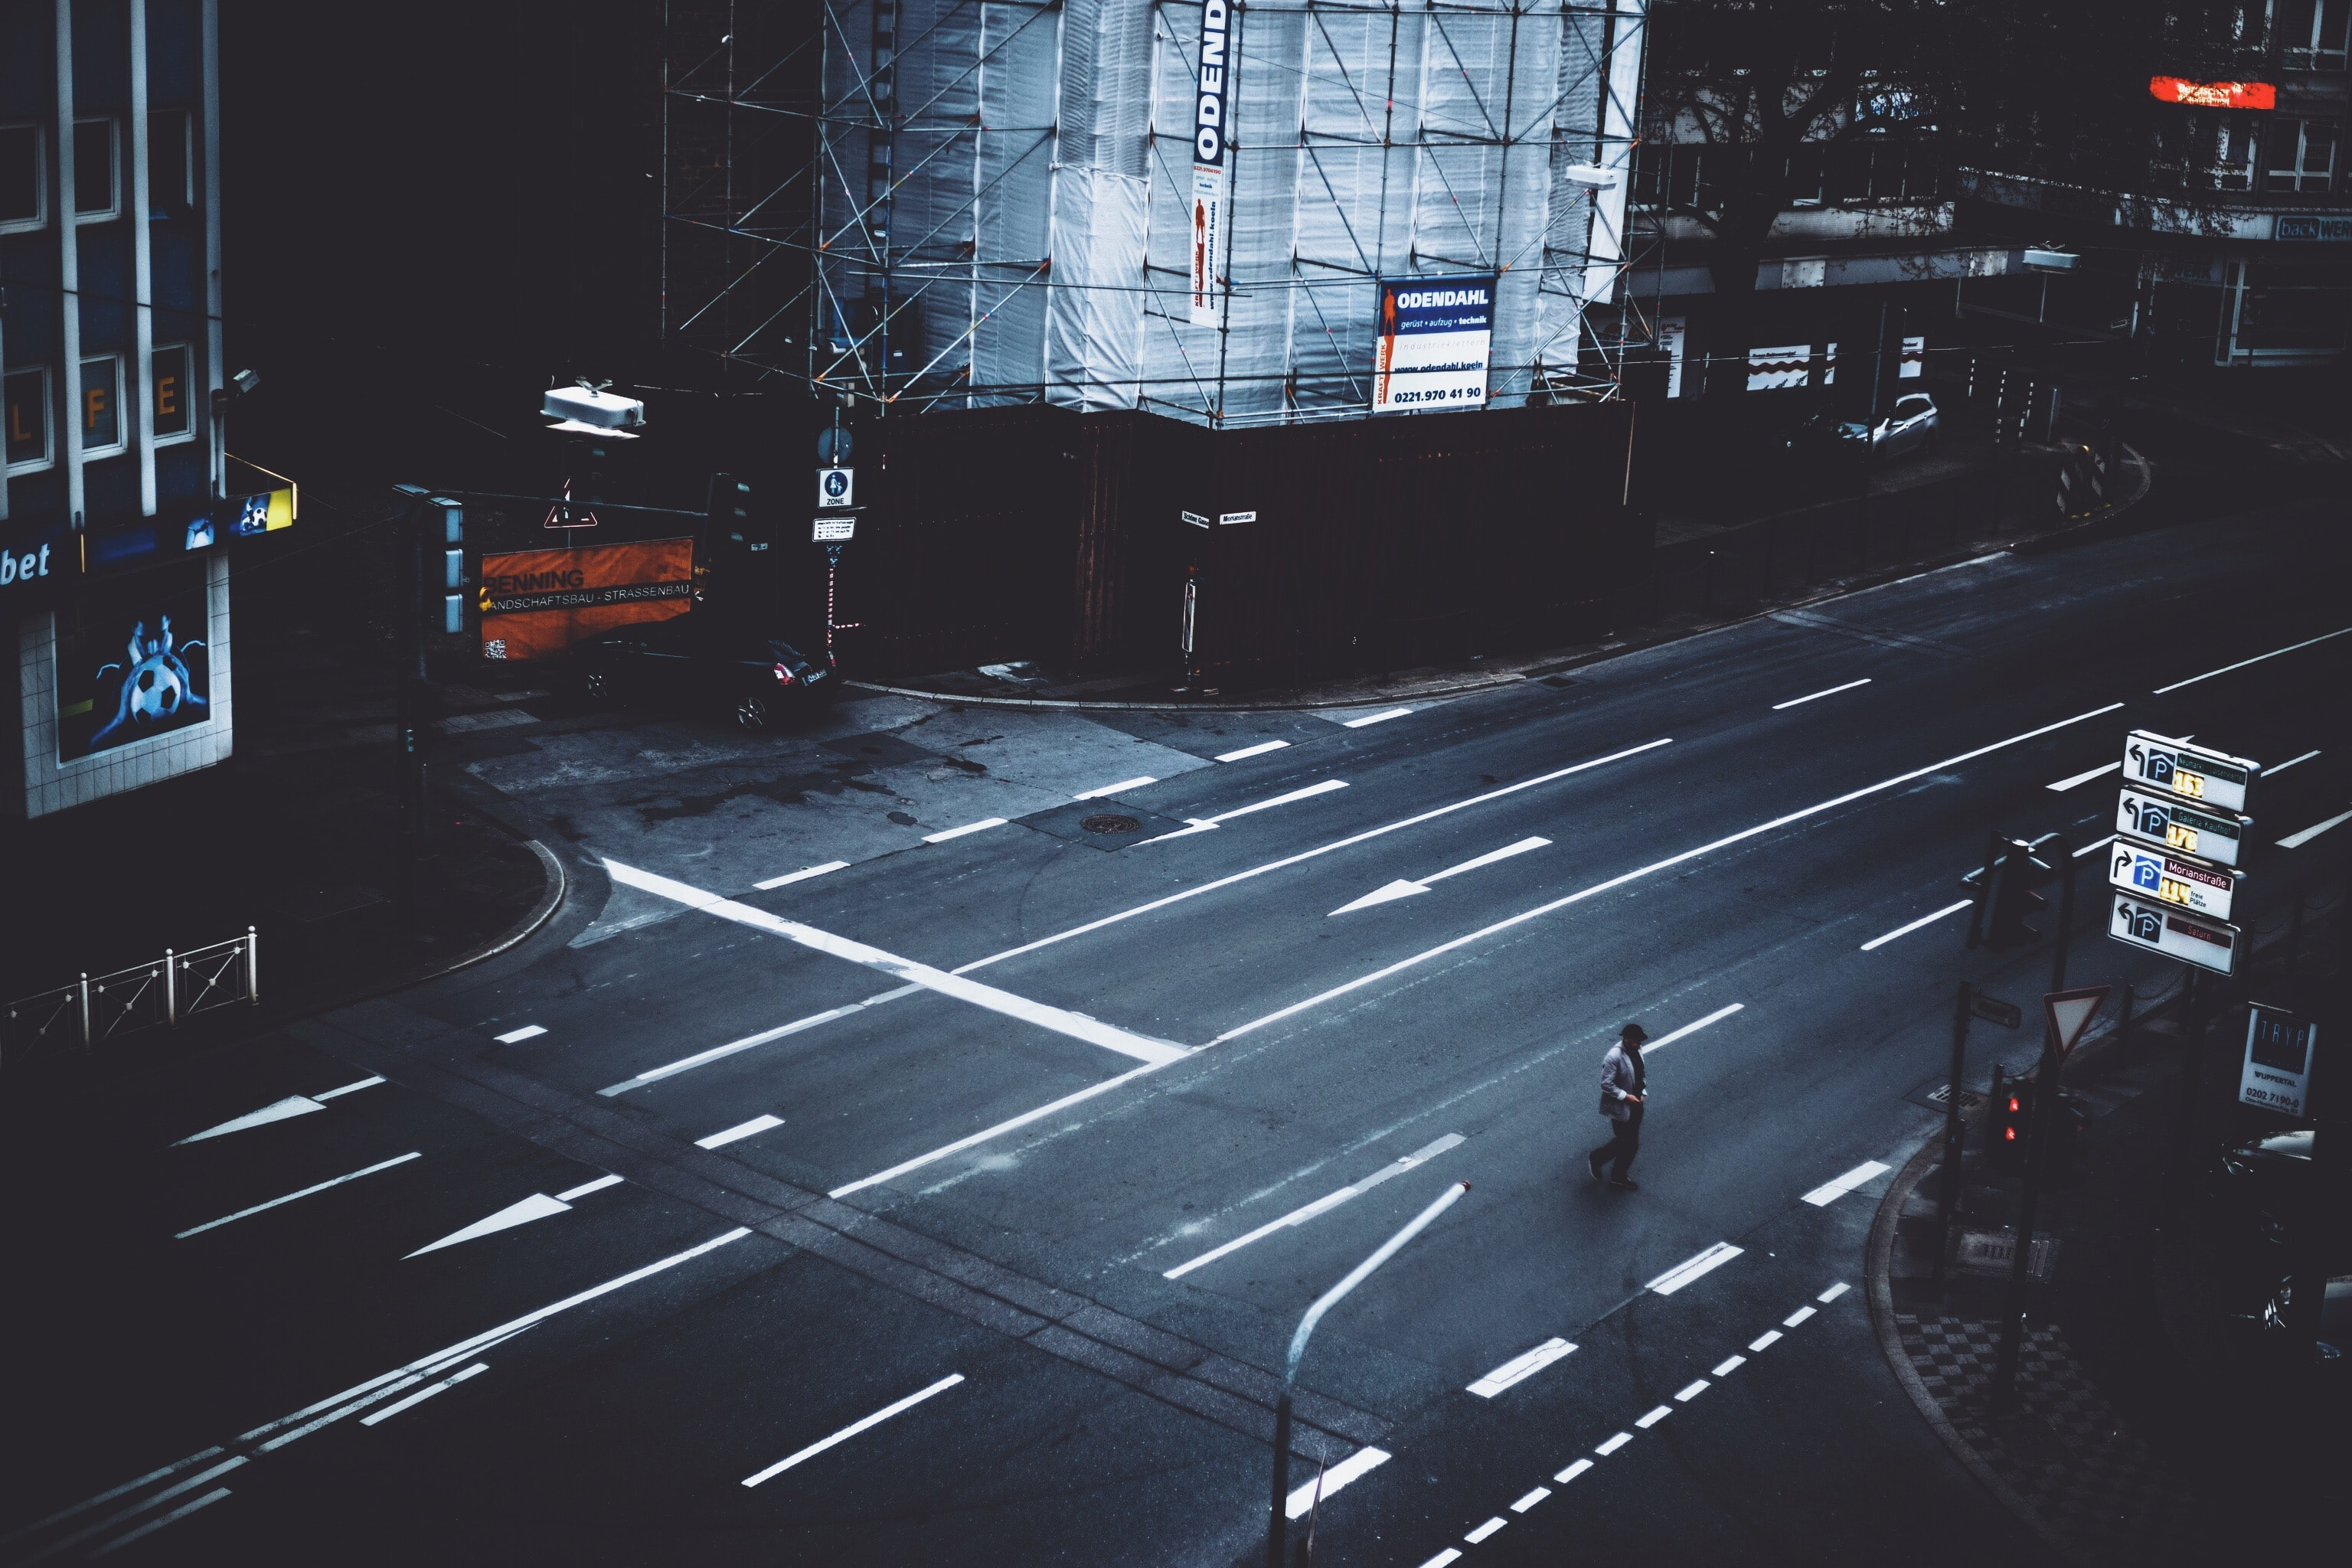 person walking in road near building during daytime